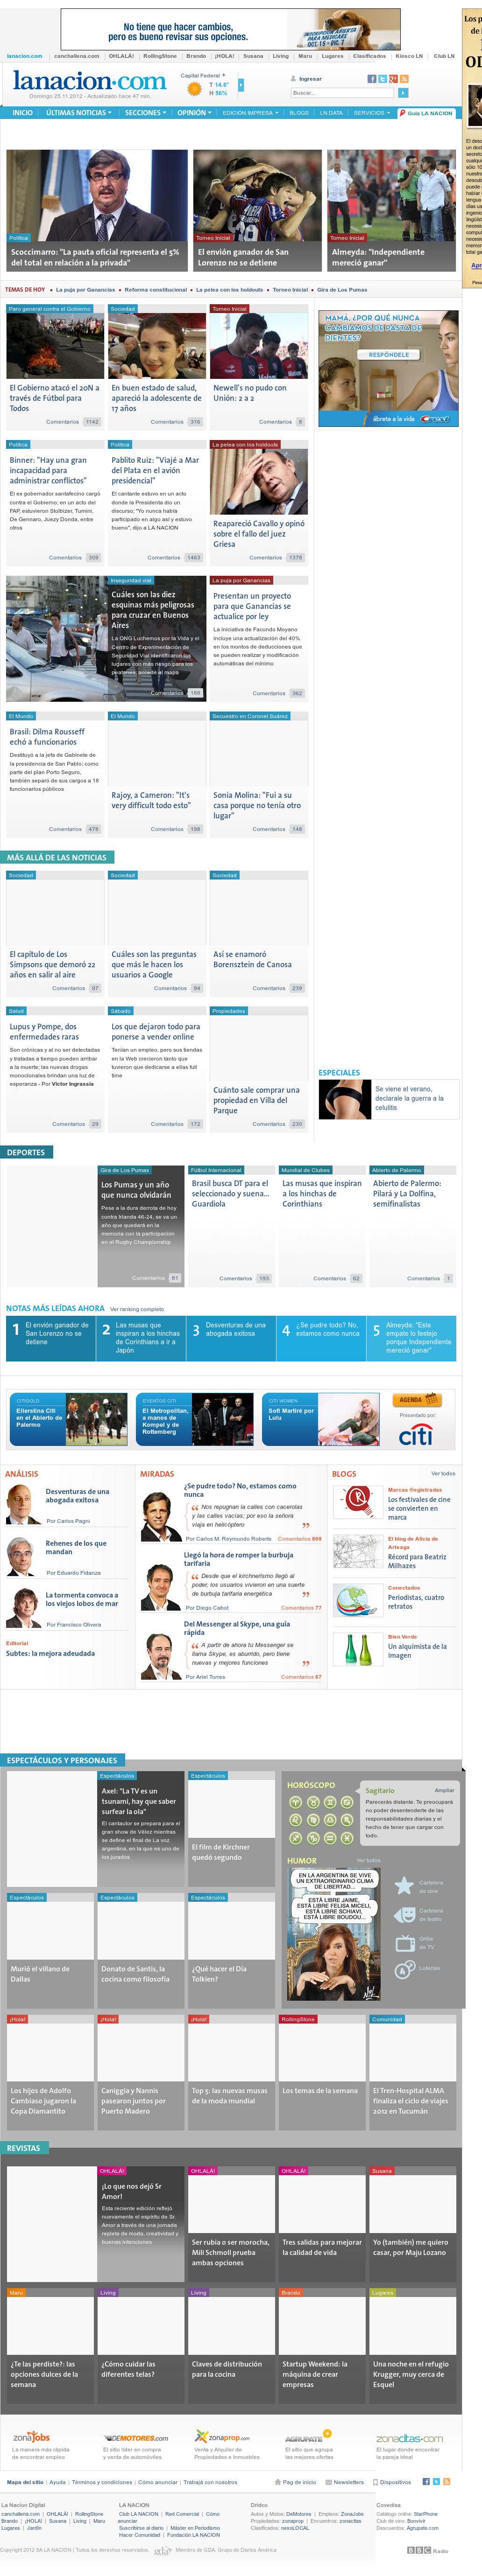 lanacion.com at Sunday Nov. 25, 2012, 7:22 a.m. UTC